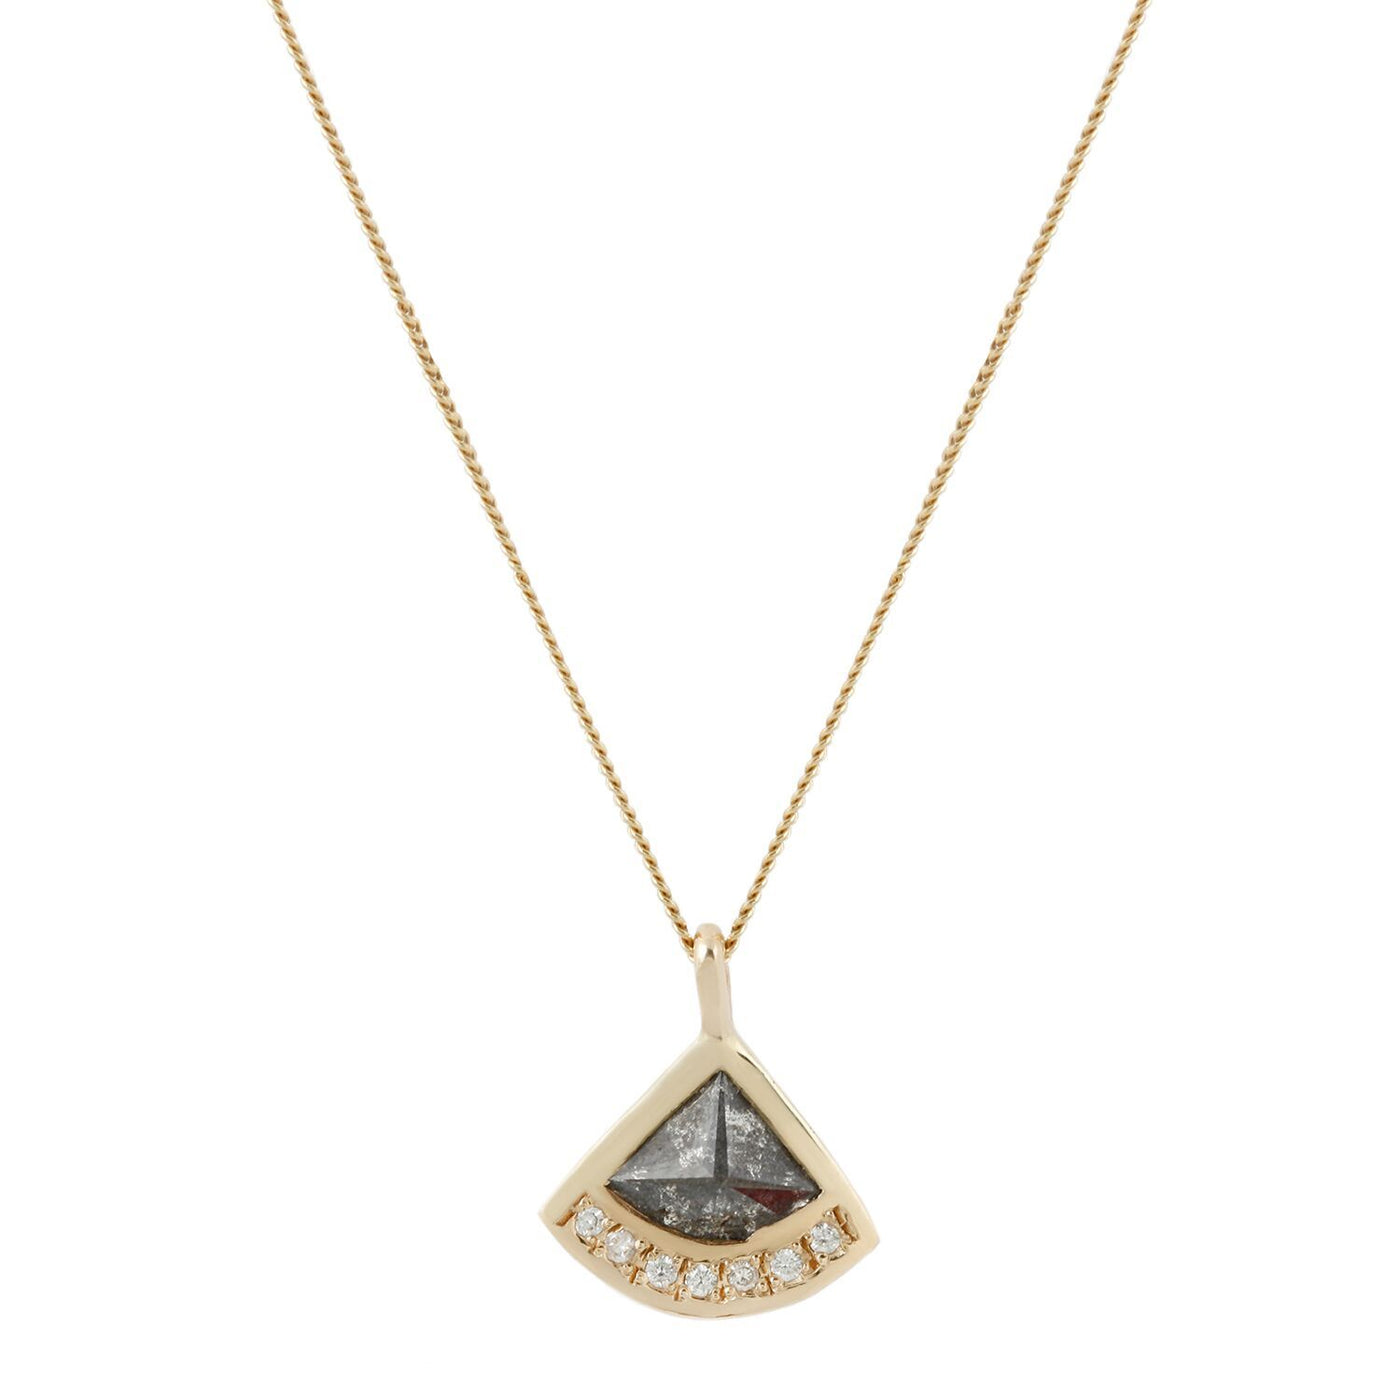 Adeline Slice Necklace with diamonds